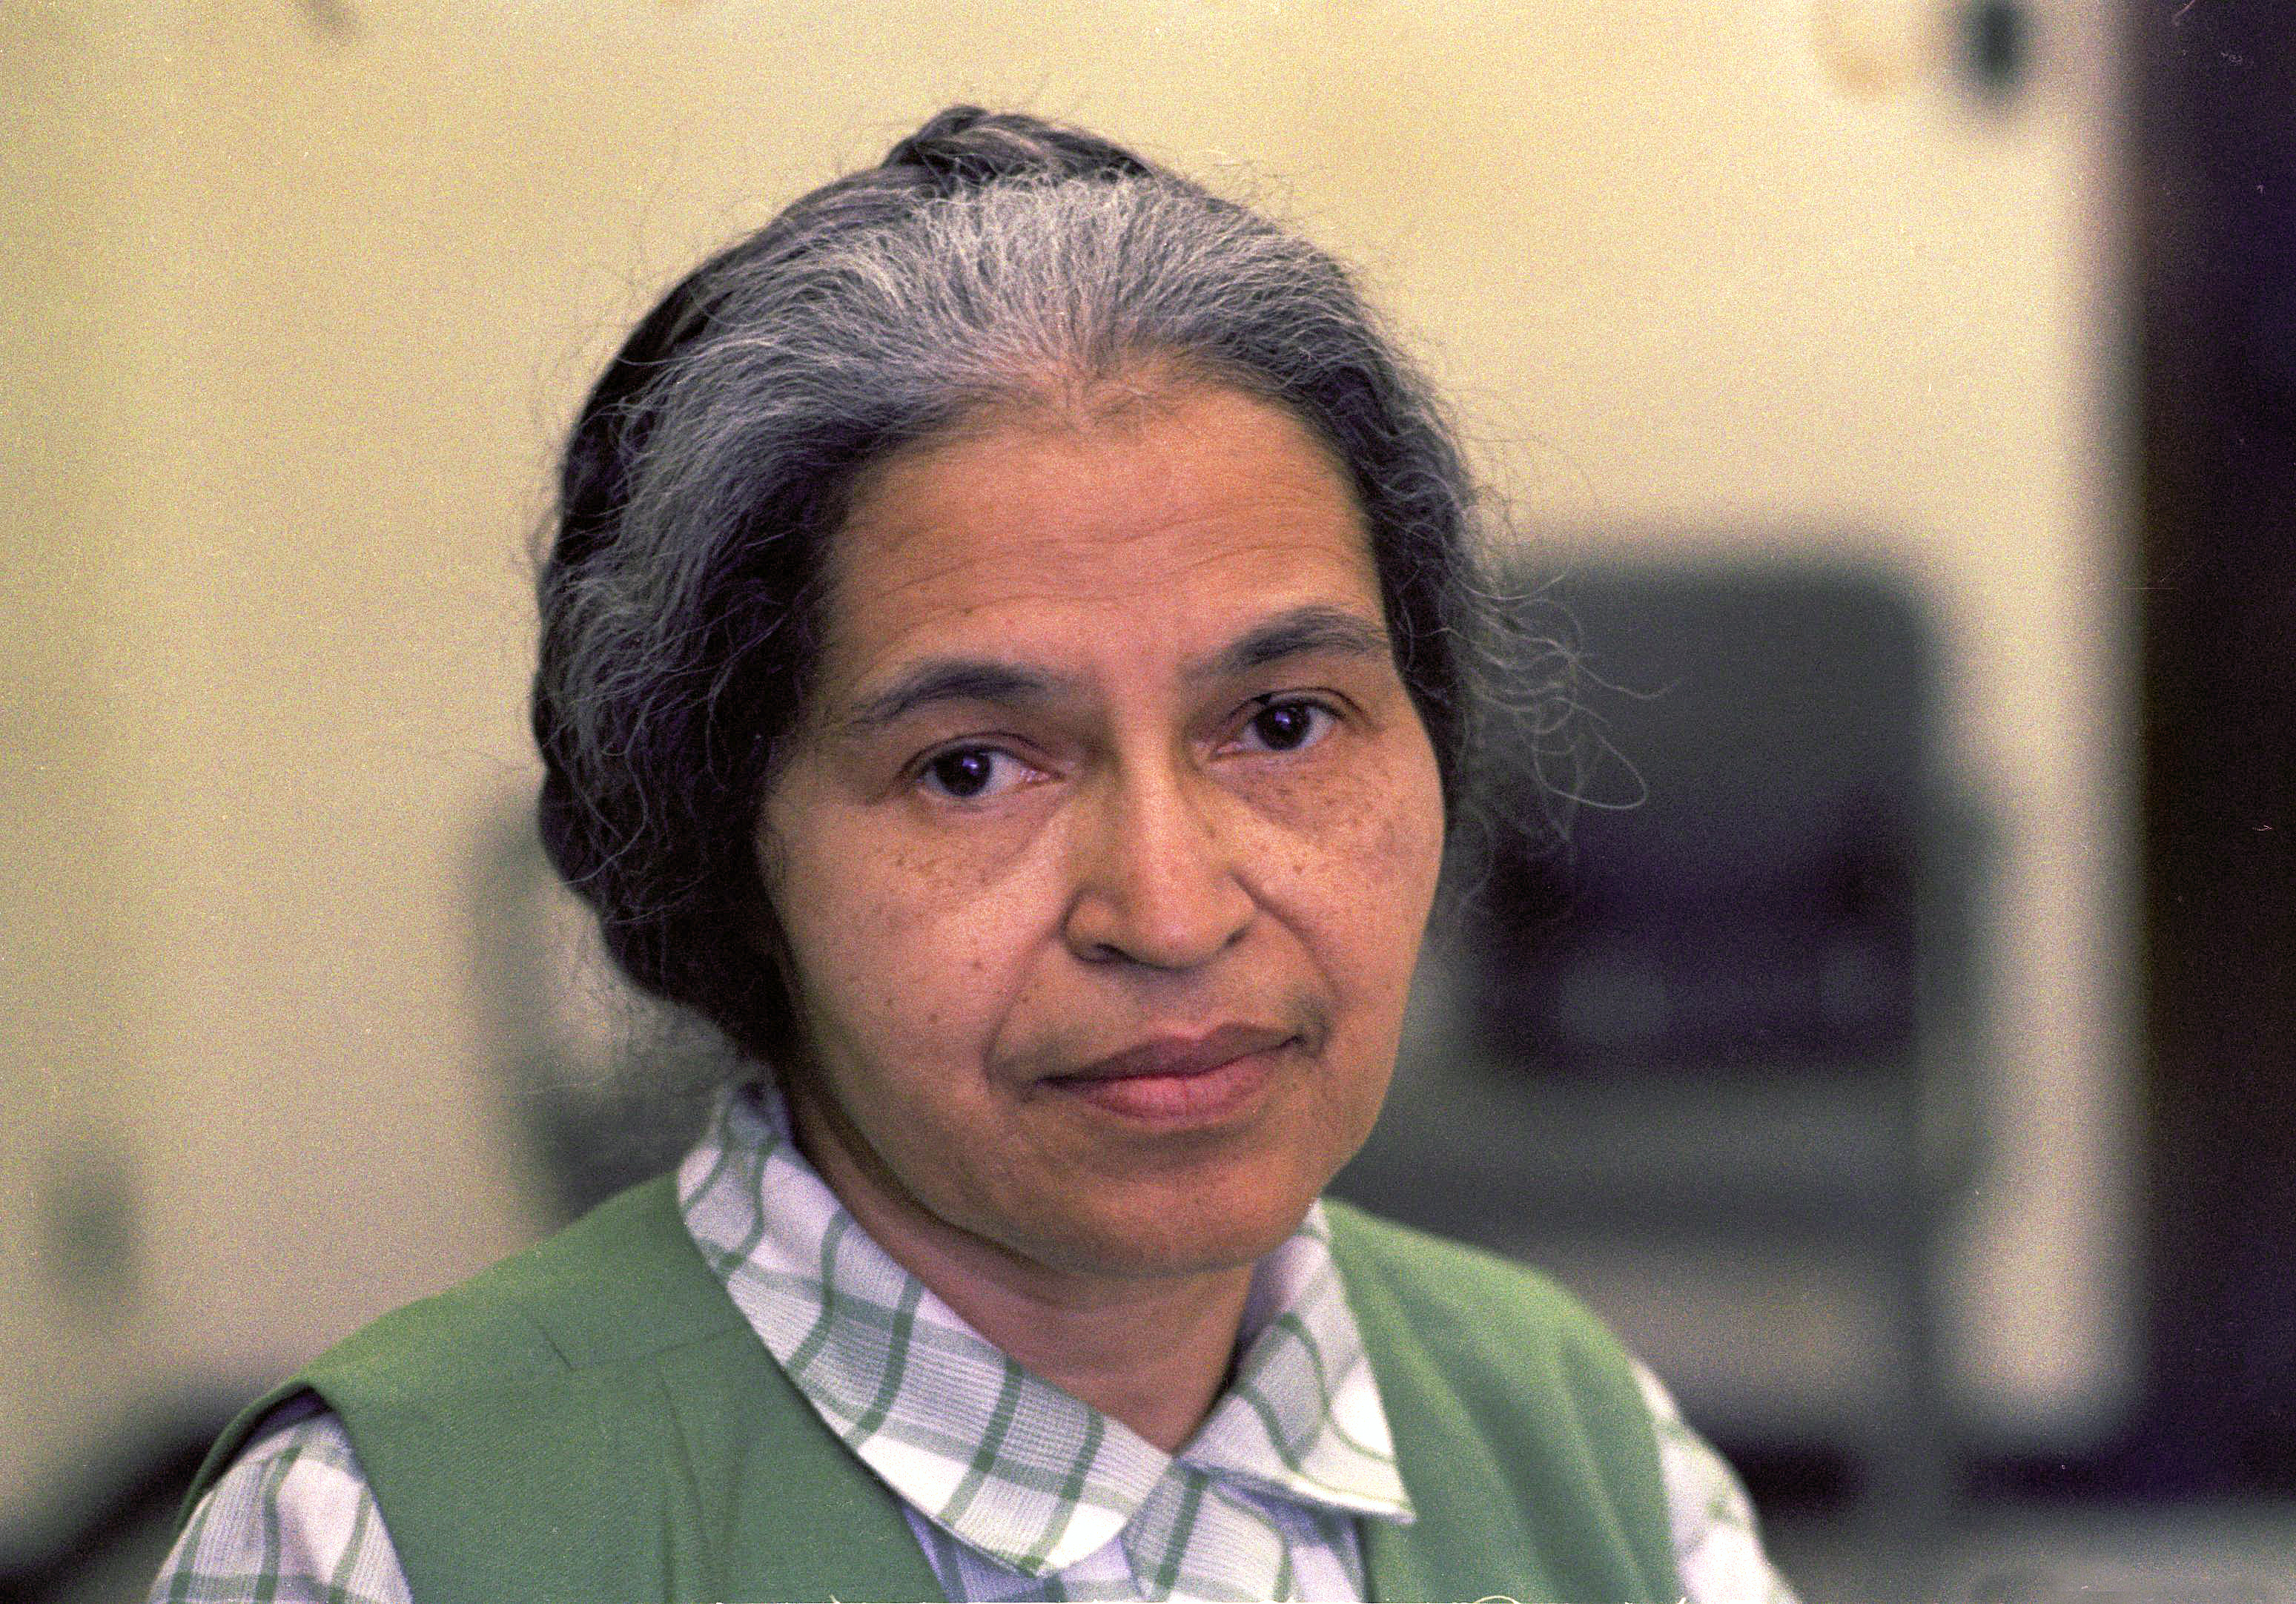 Rosa Parks Life After The Bus Was No Easy Ride